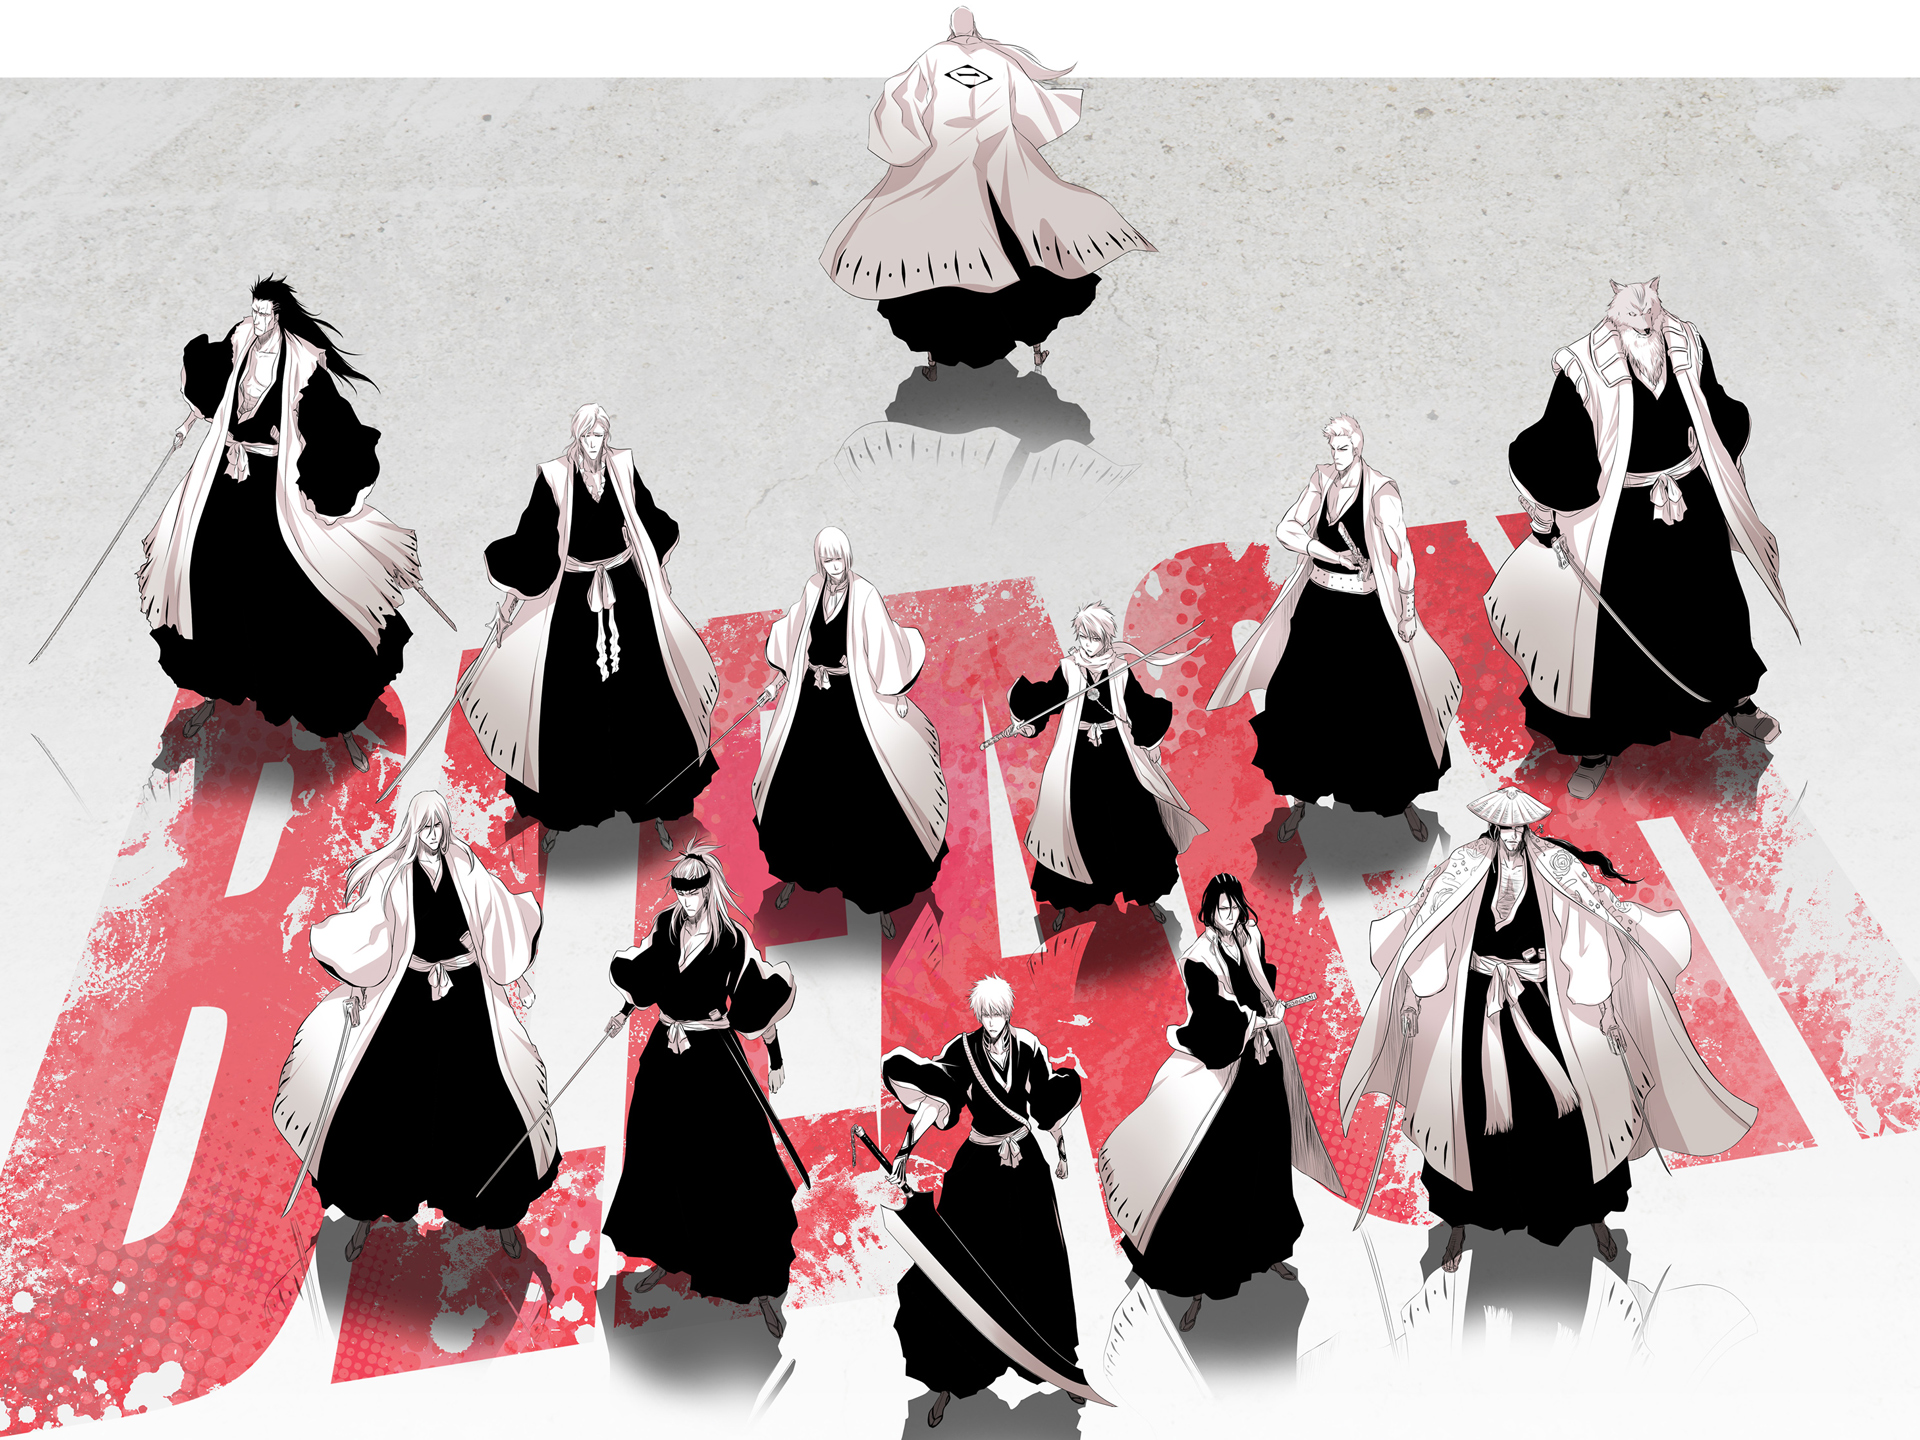 Shinigami 4k HD Wallpaper Picture Image Photo with tags of Anime 1920x1440